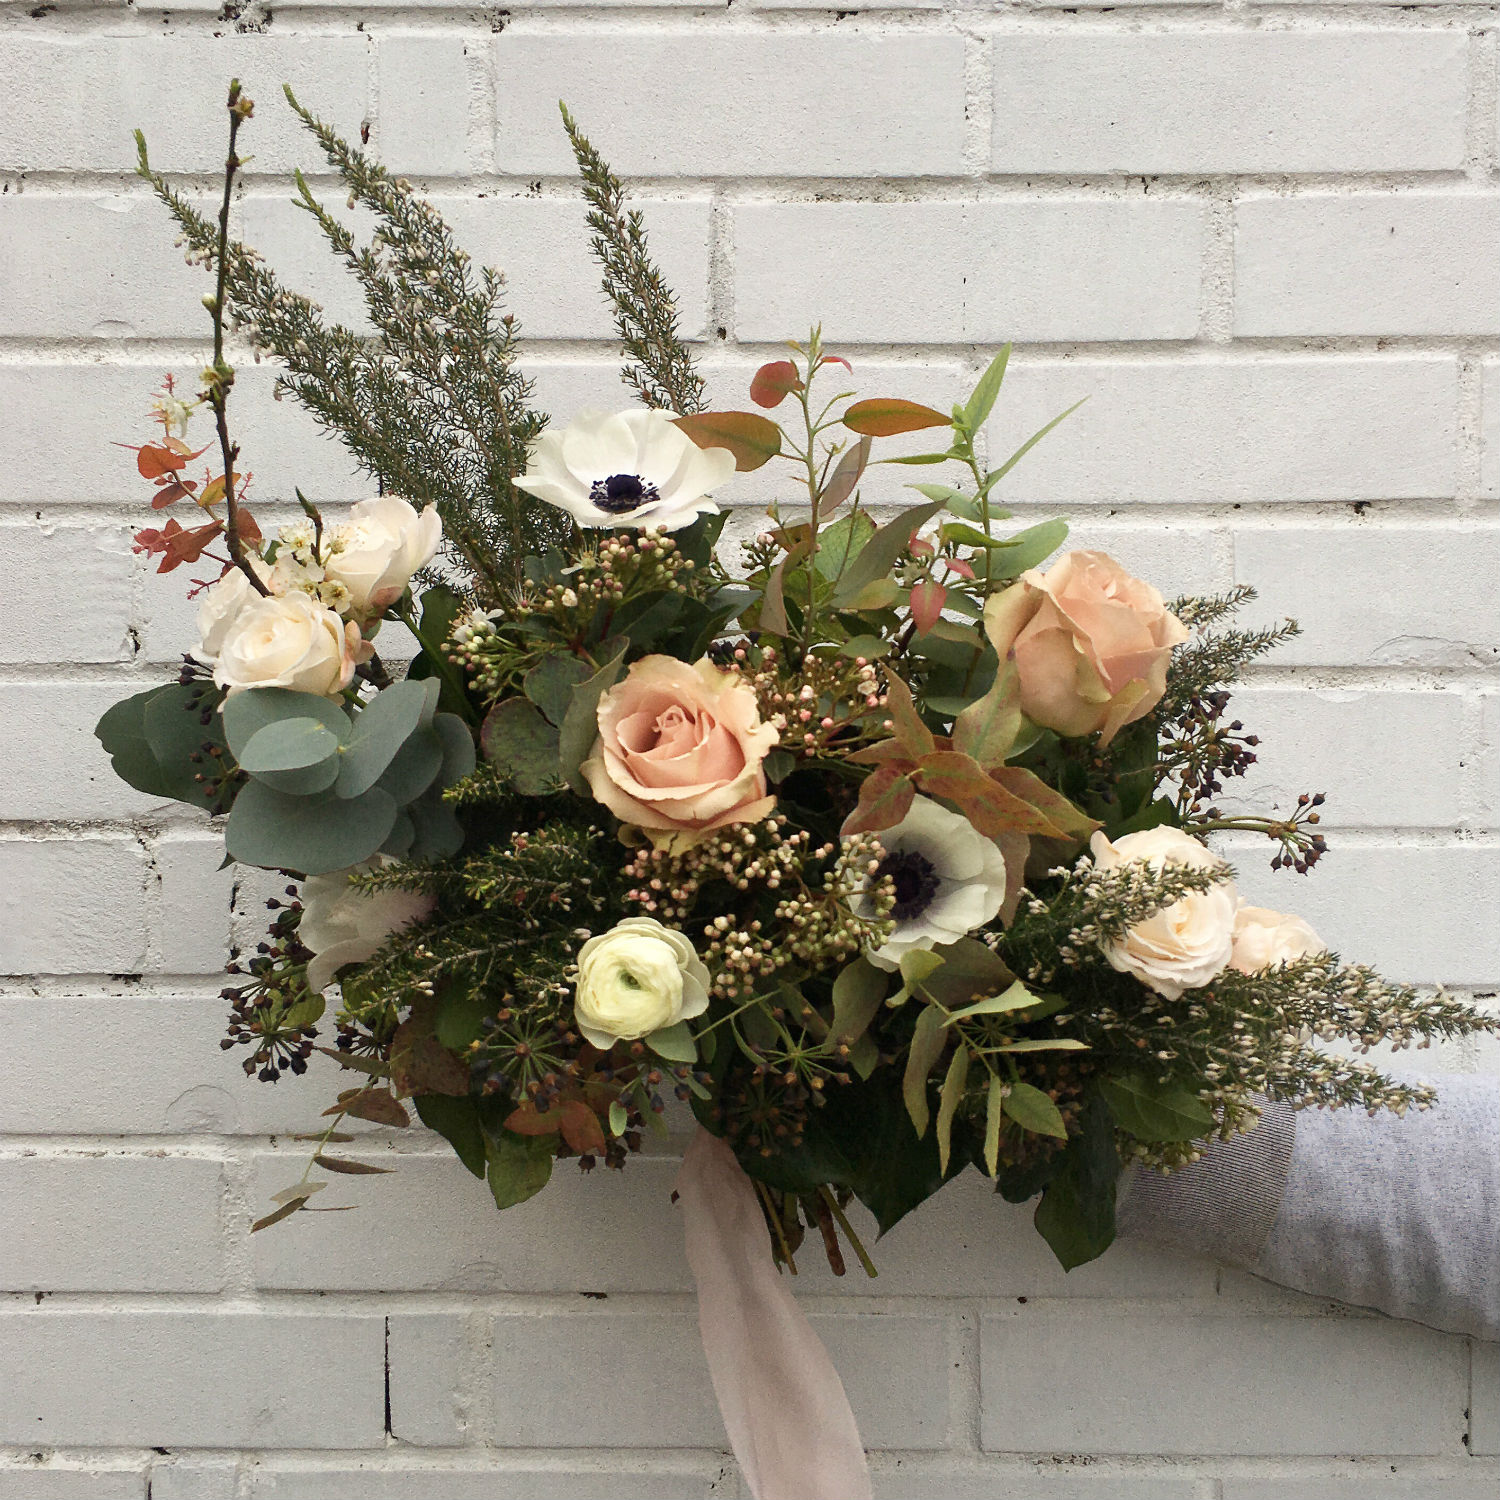 Wedding flowers: ideas for your big day